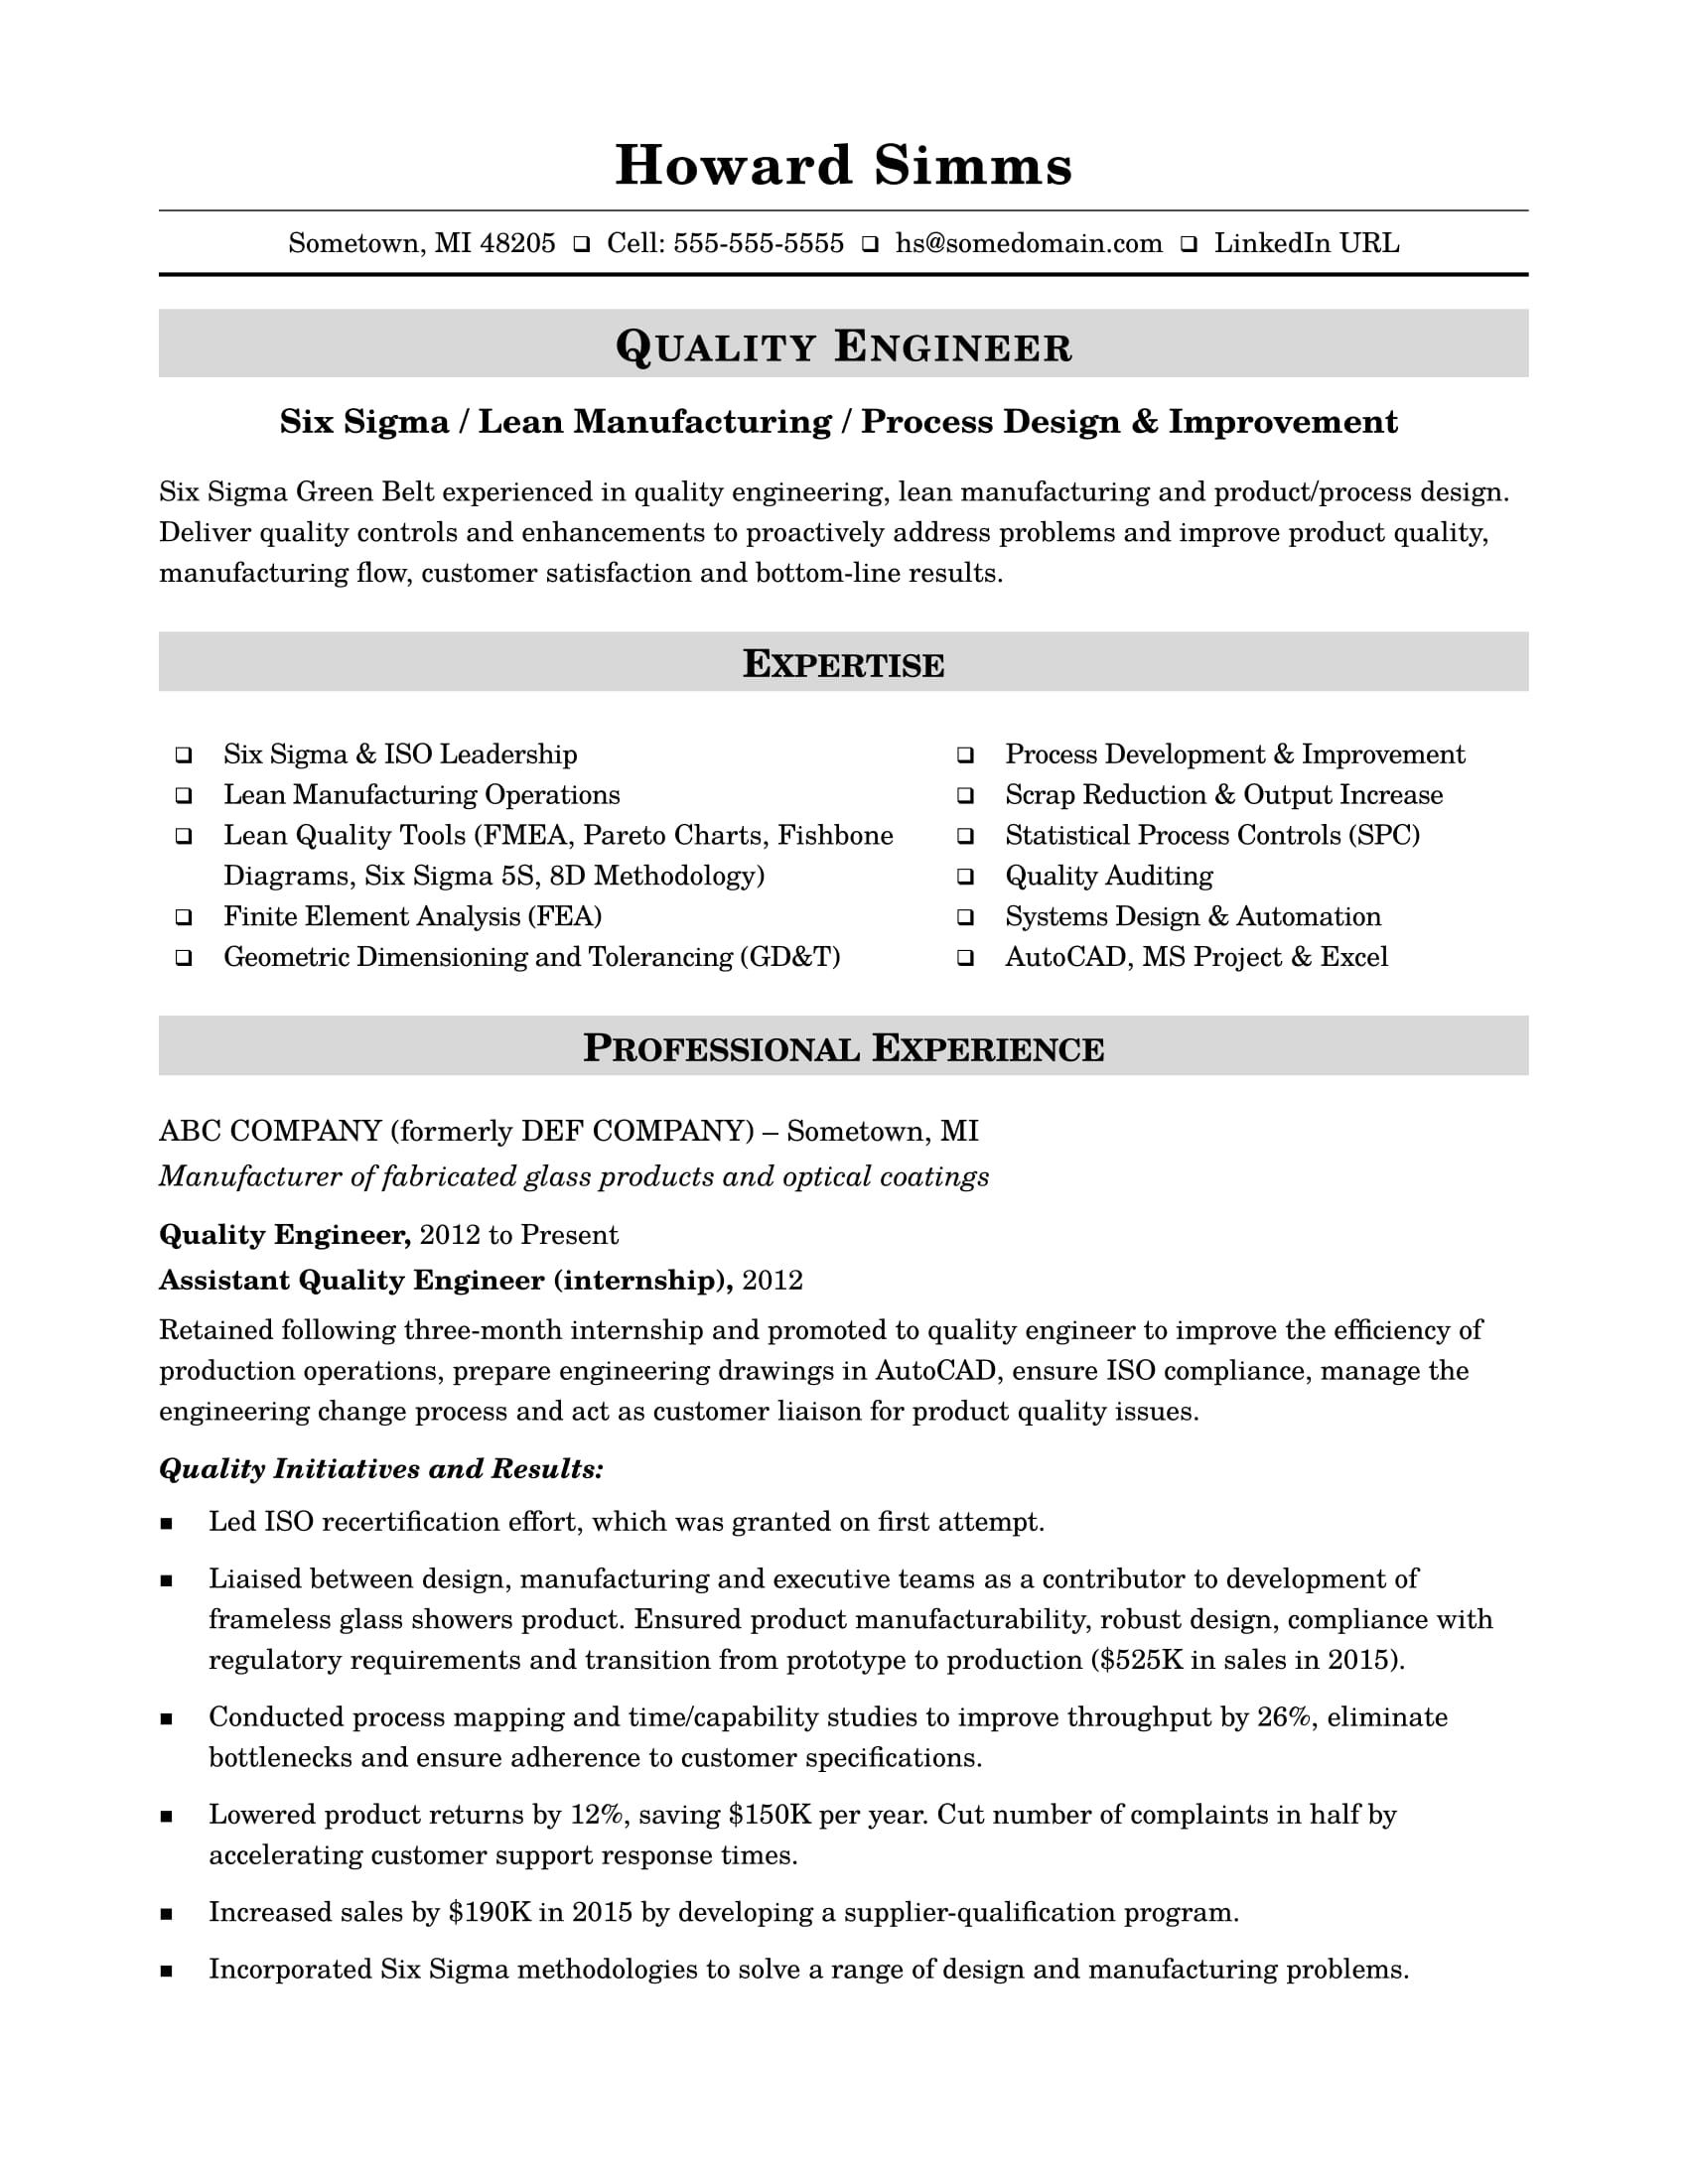 Sample Resume For A Midlevel Quality Engineer Engineering Resume Resume Format Best Resume Format